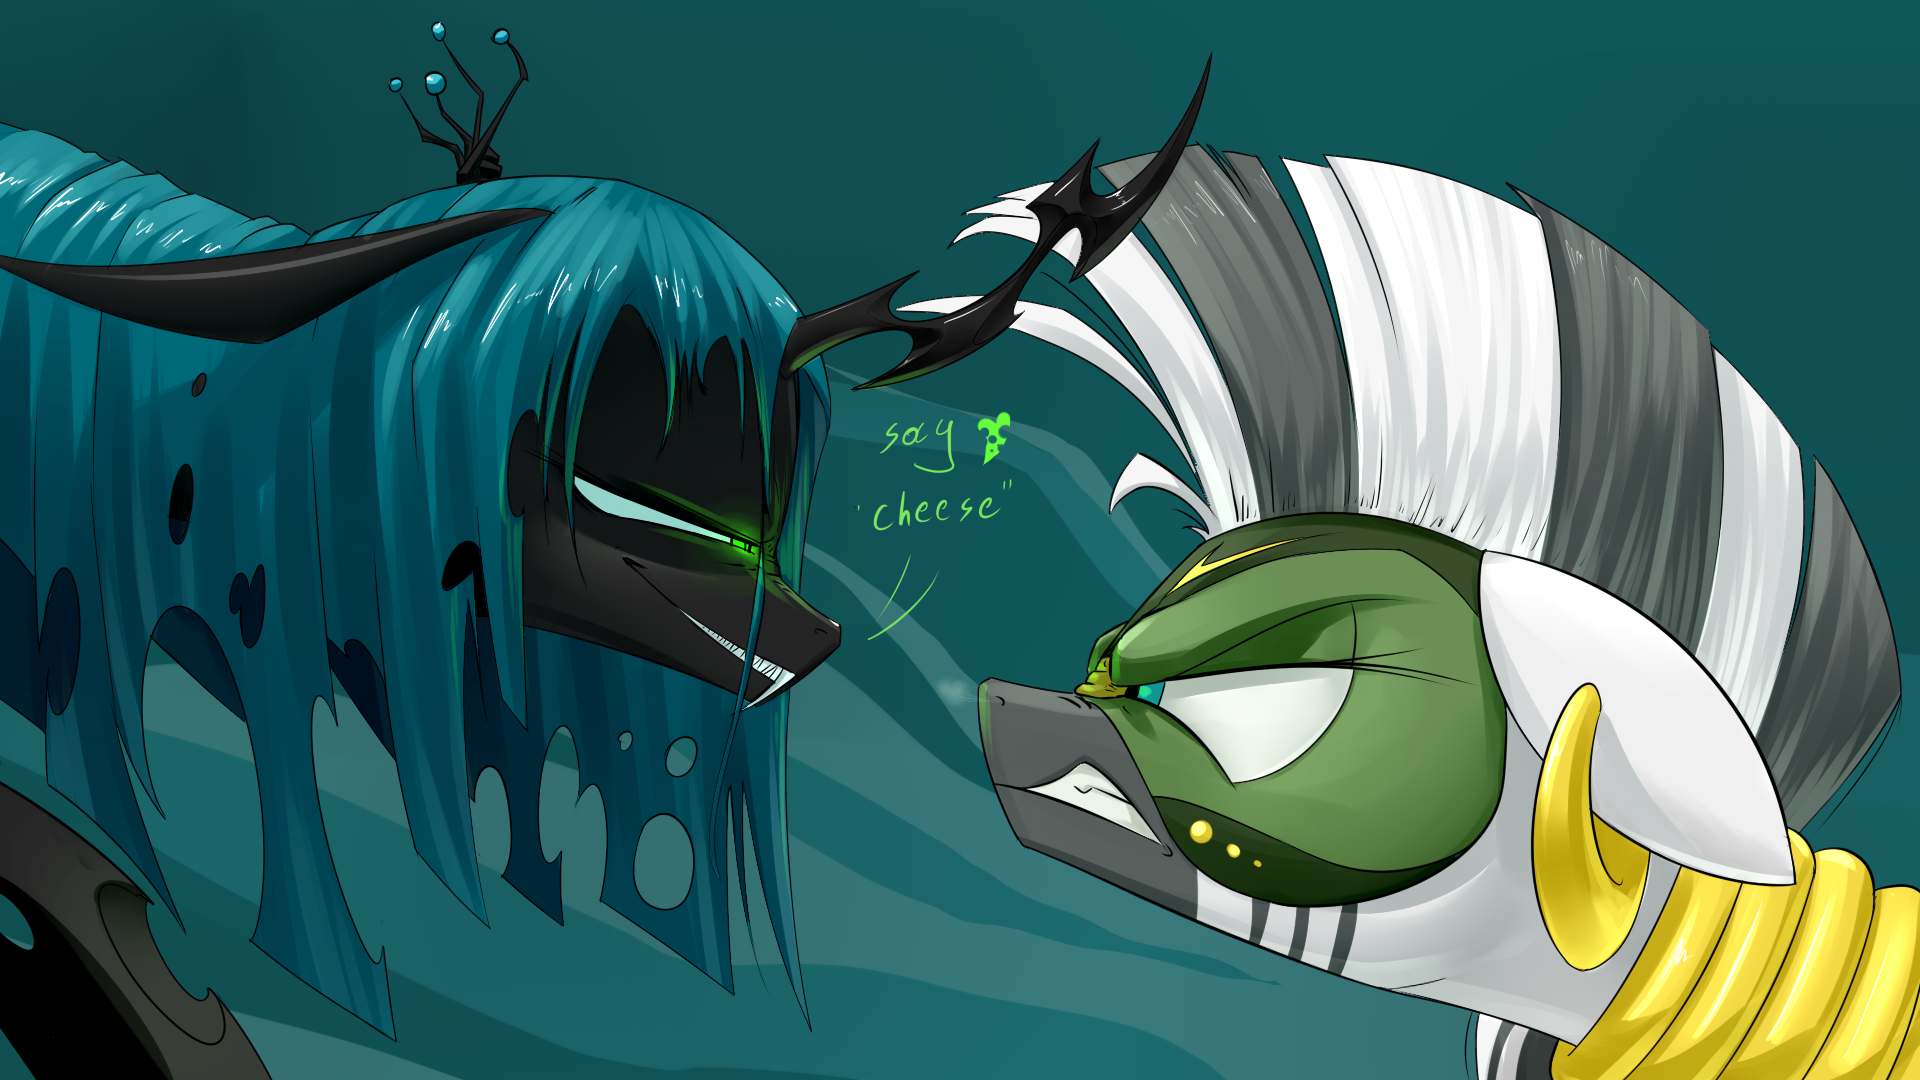 Stop Bugging Me By Underpable On Deviantart